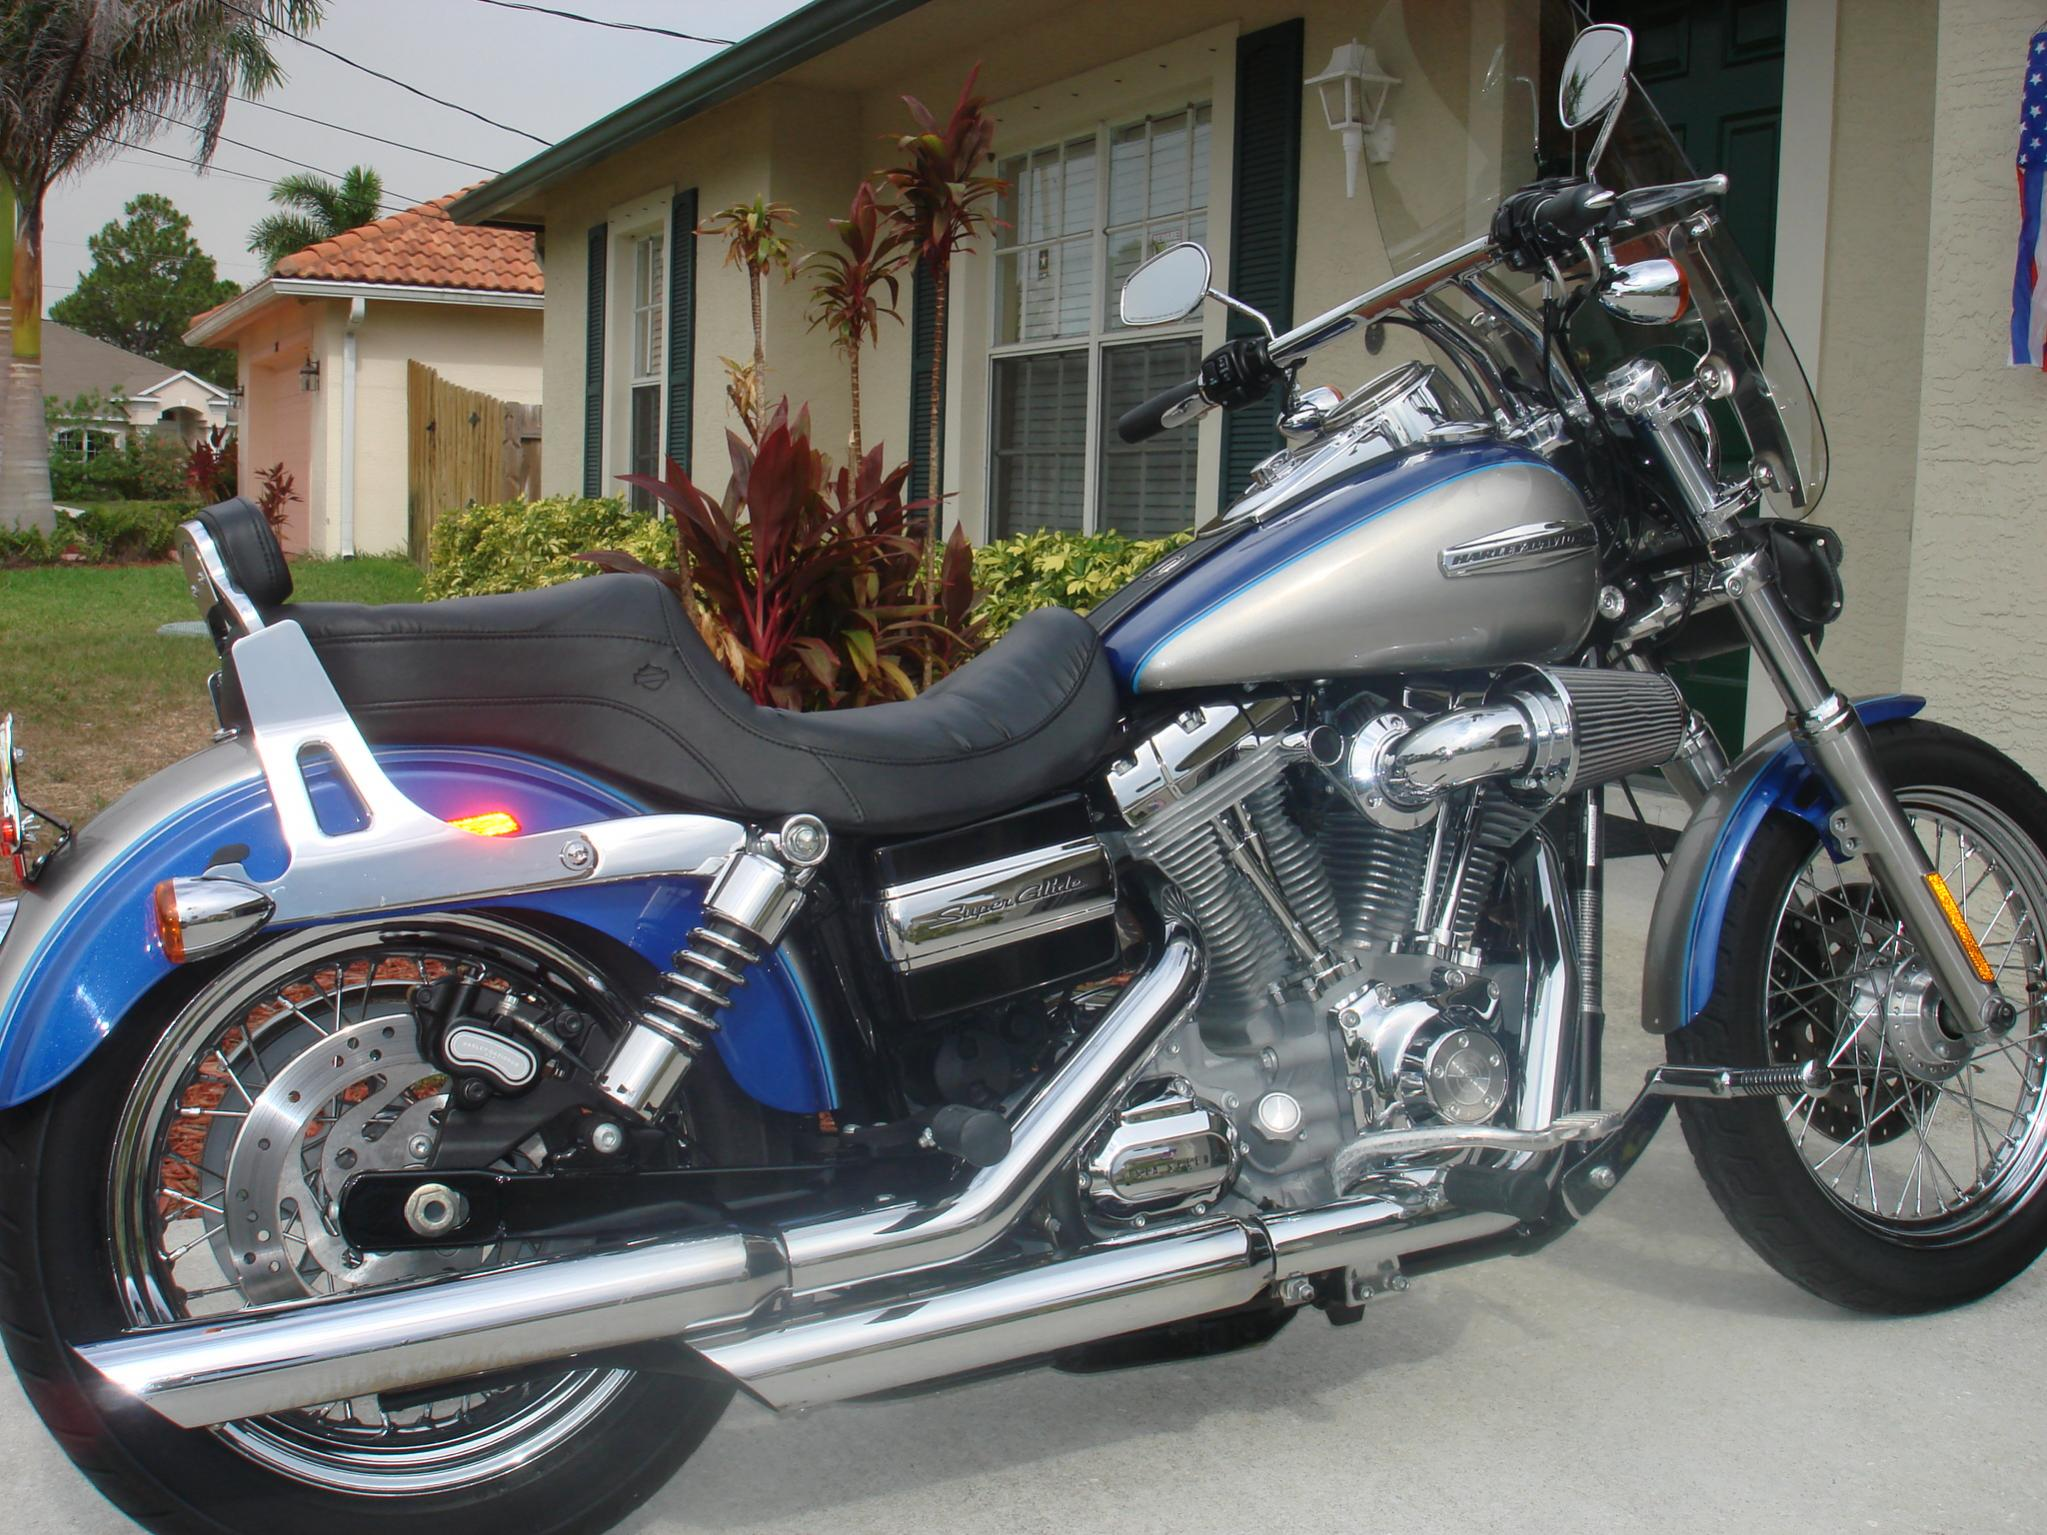 2005 harley davidson dyna super glide custom owners manual